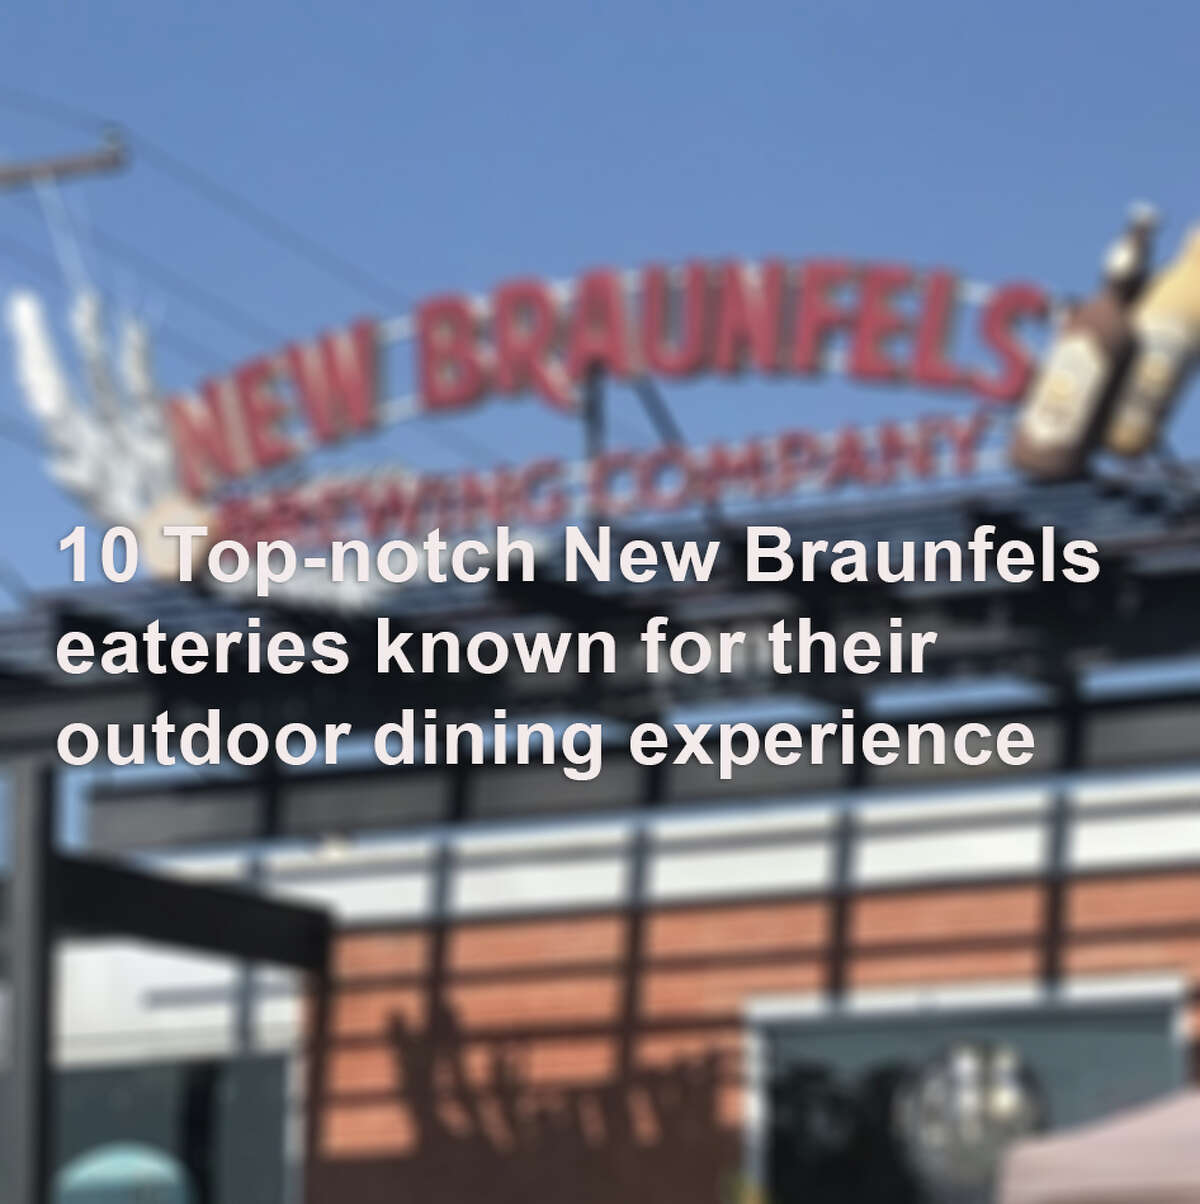 Check out these 10 New Braunfels restaurants where you can enjoy the awesome weather along with some amazing food.